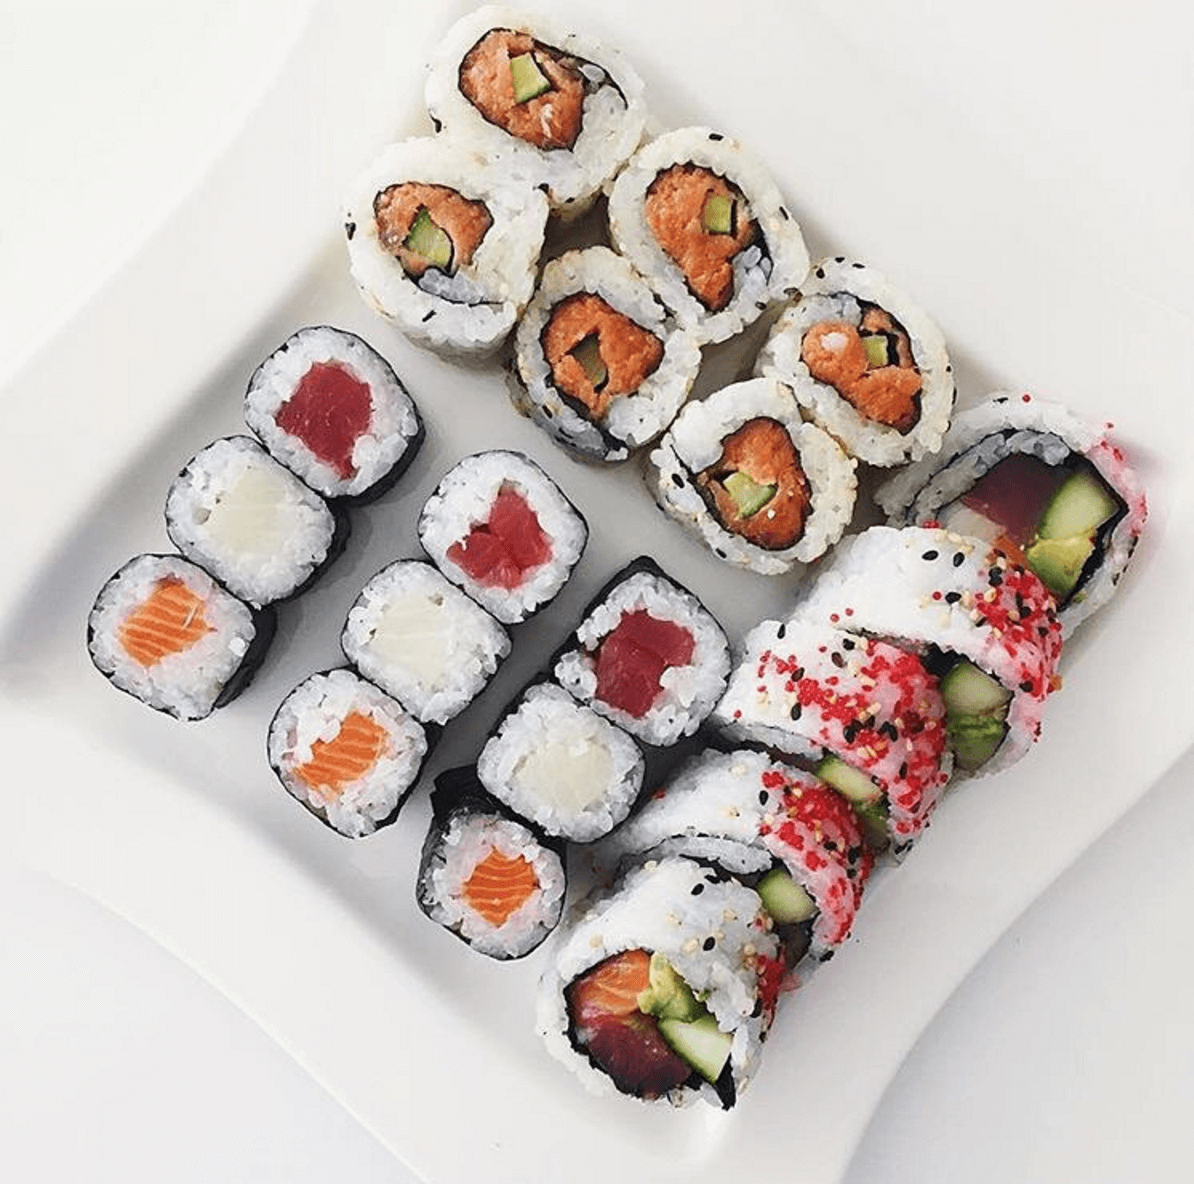 Shop Specialties Munchery Home Food Delivery Sushi